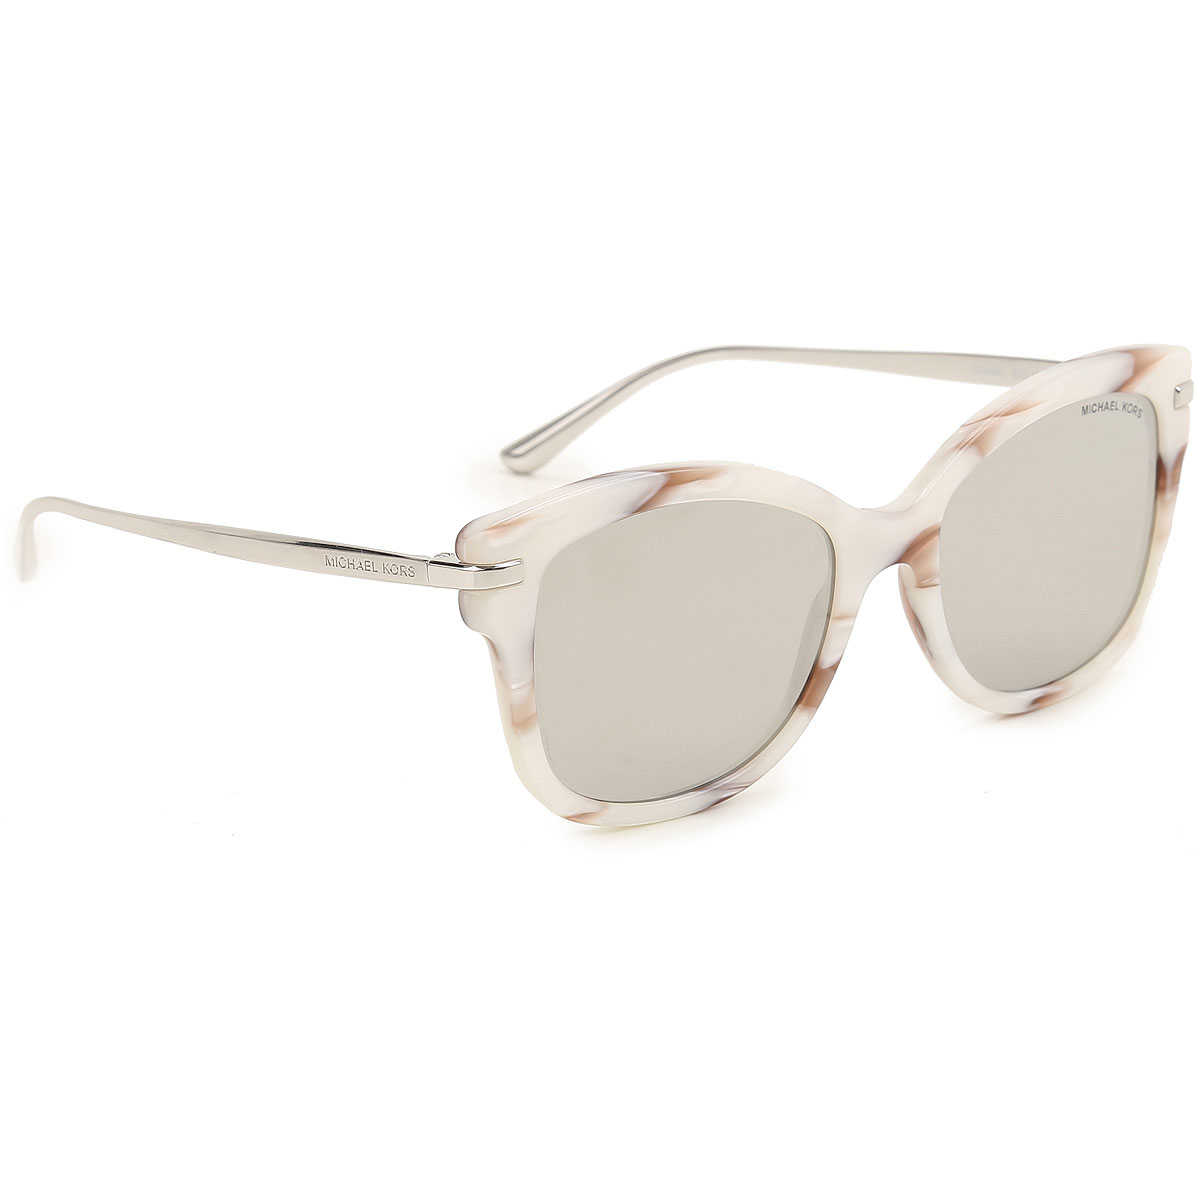 Michael Kors Sunglasses On Sale